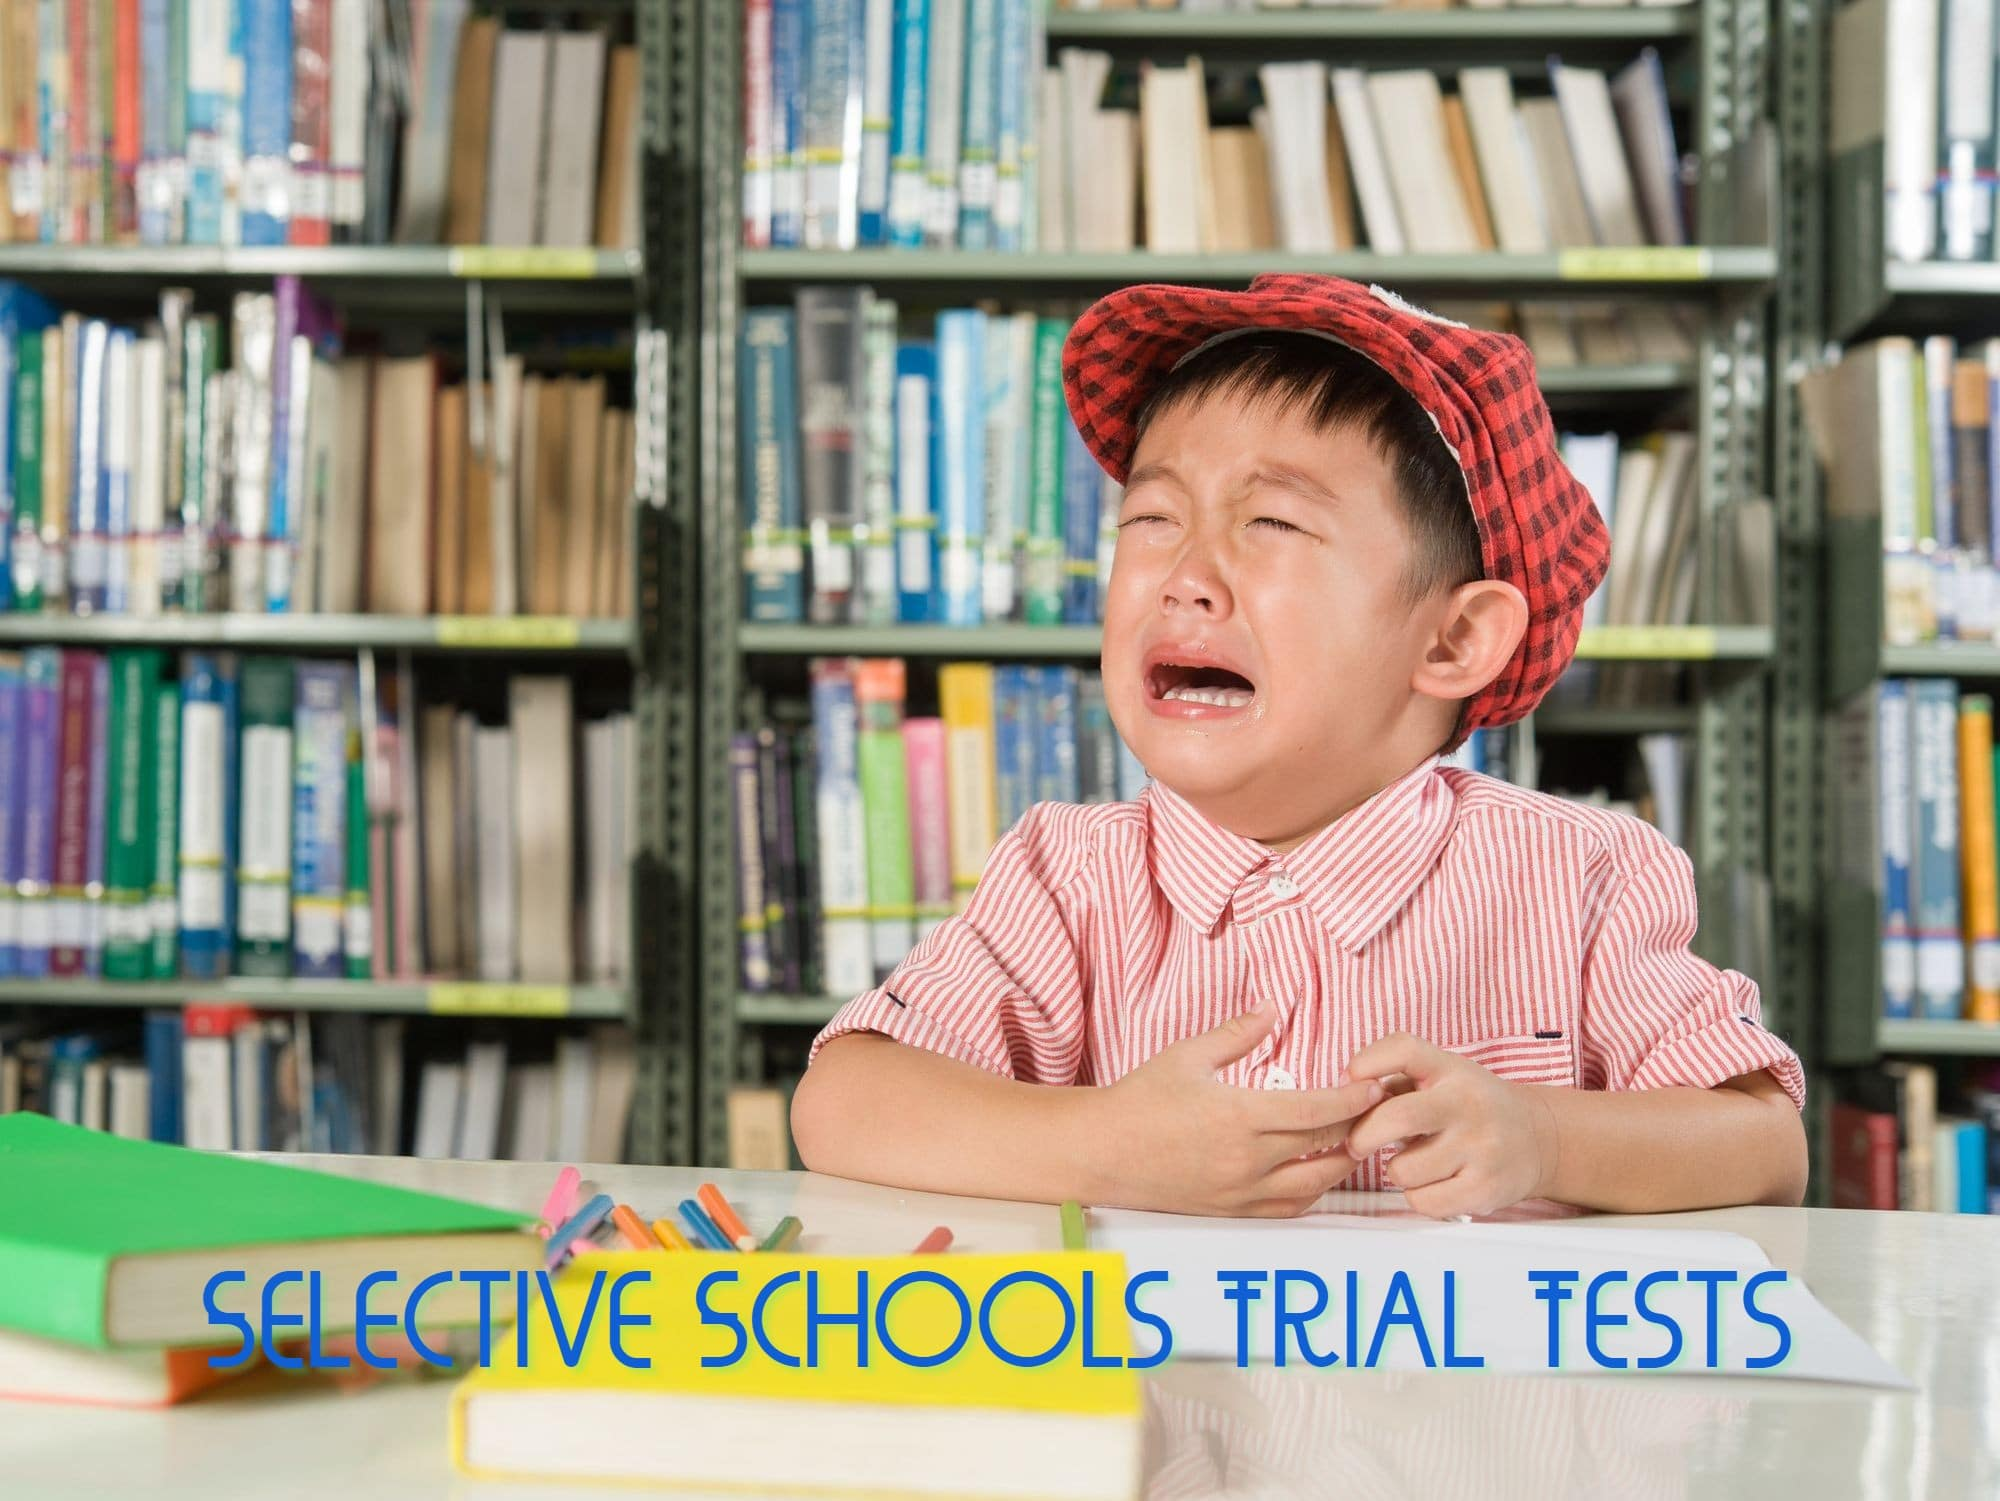 Selective high schools test trial tests